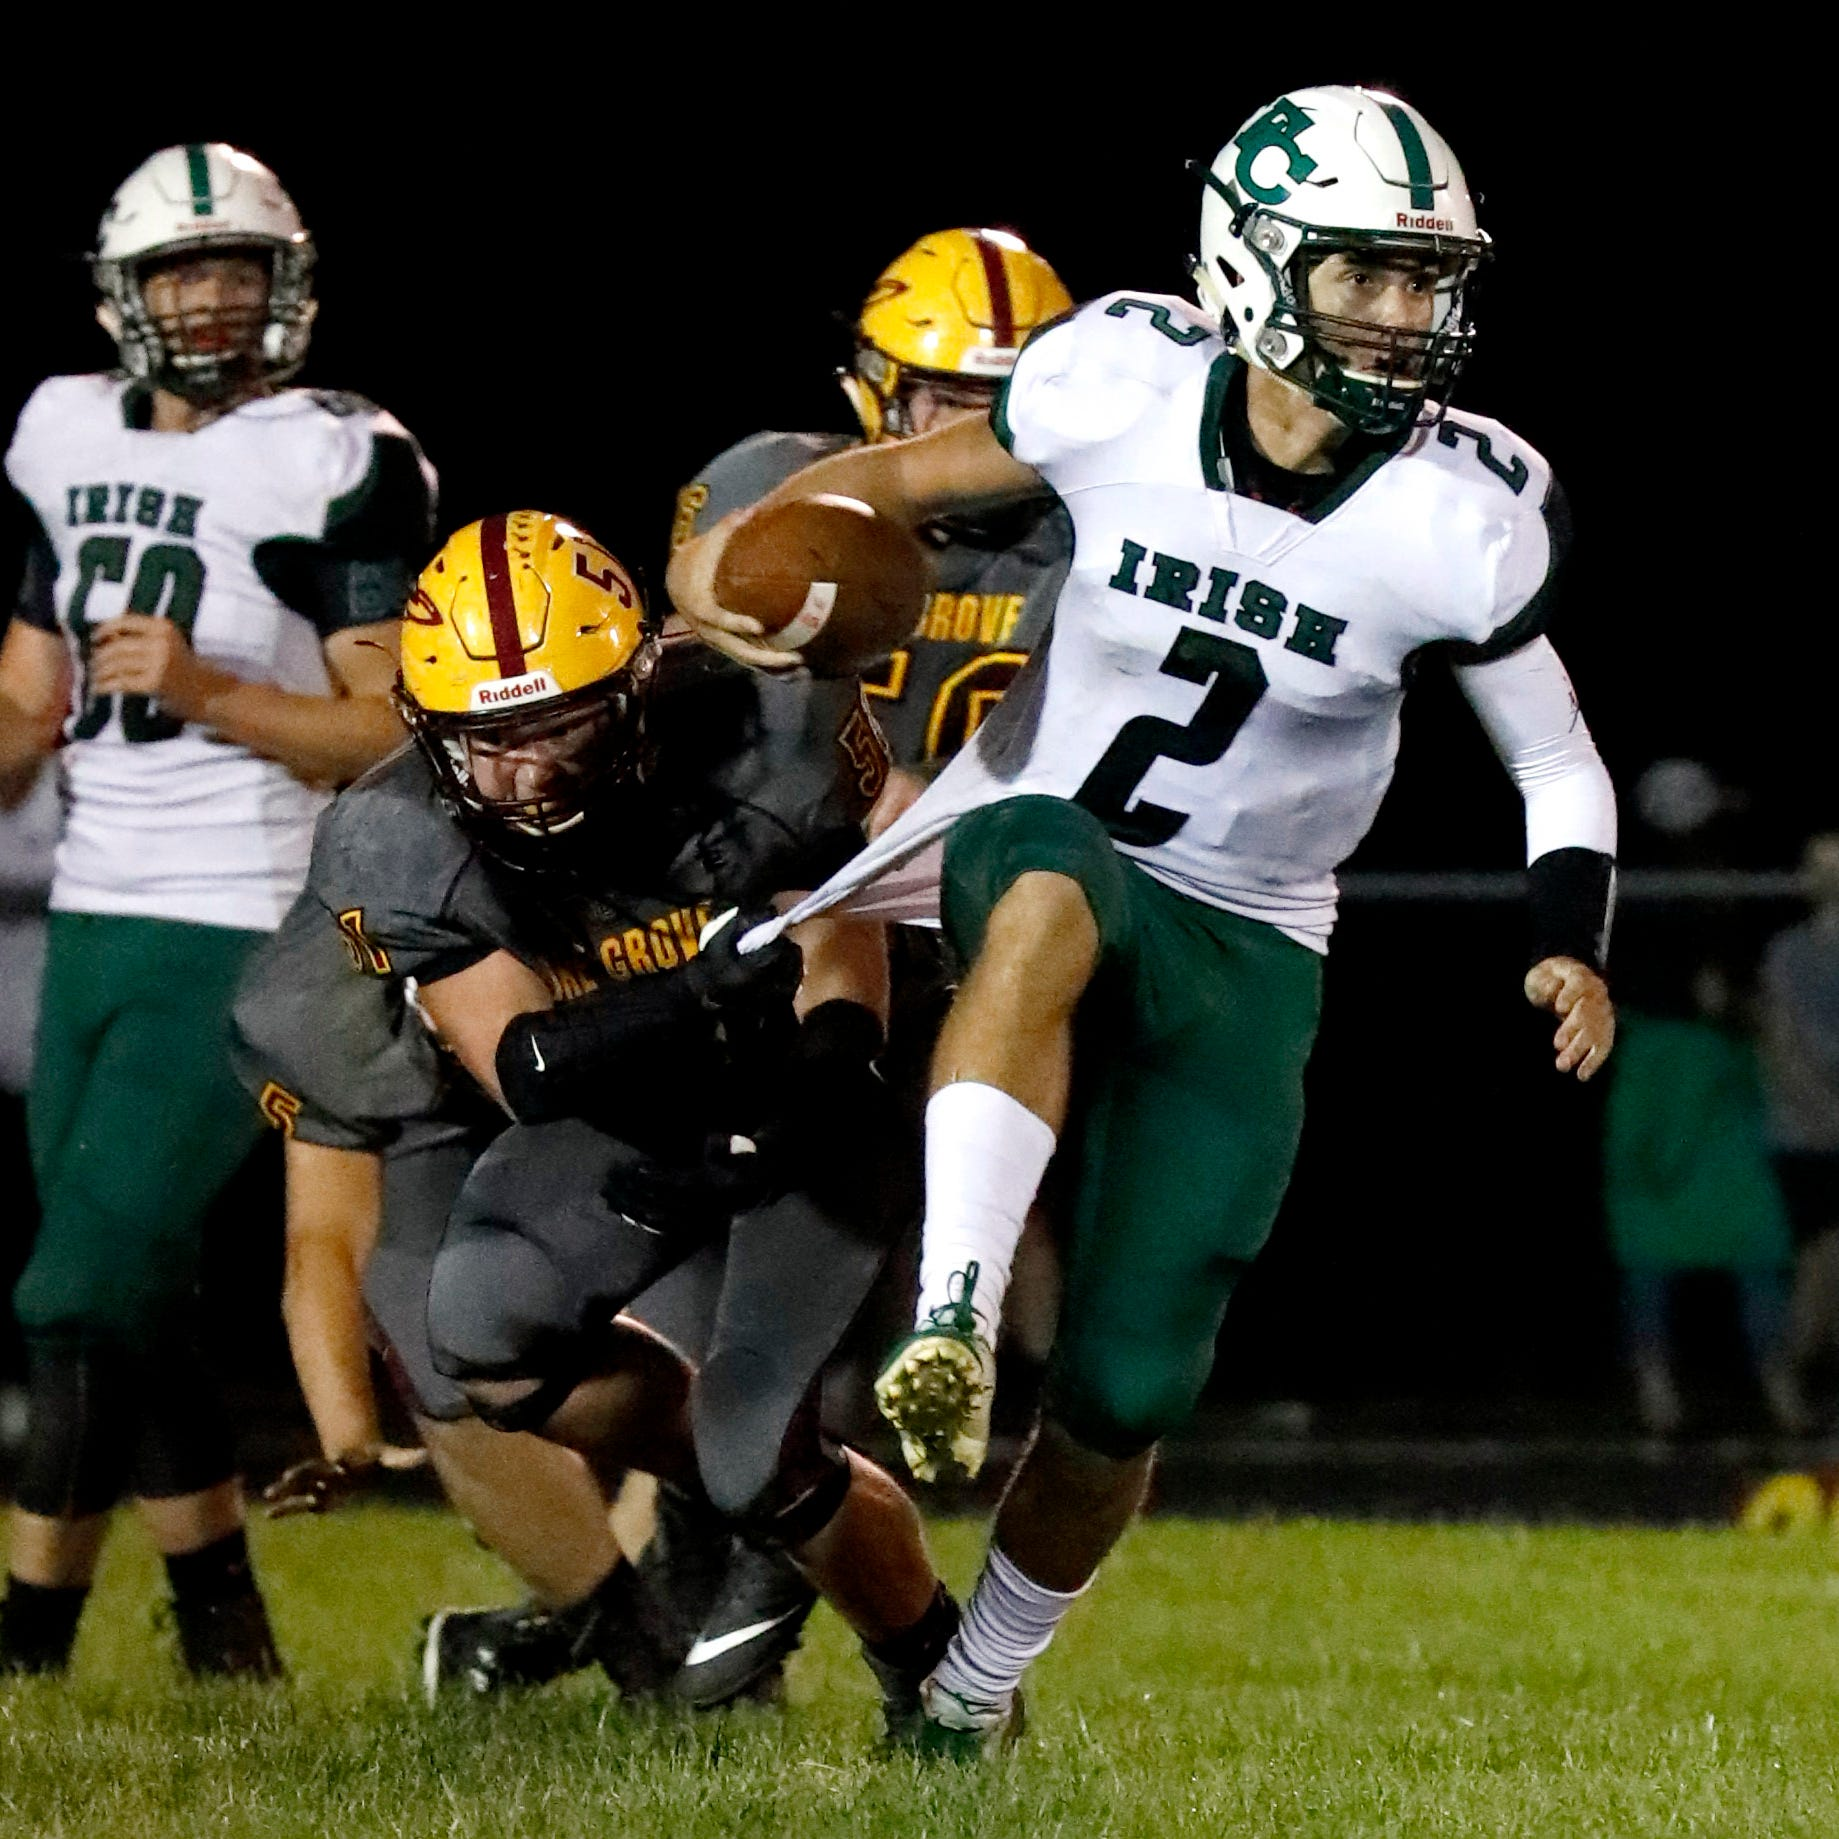 Berne Union's Lewie Stephens grabs the jersey of Fisher Catholic quarterback Kaden Starcher before tackling him Friday, Sept. 21, 2018, at Berne Union High School in Sugar Grove. The Rockets defeated the Irish 27-13.